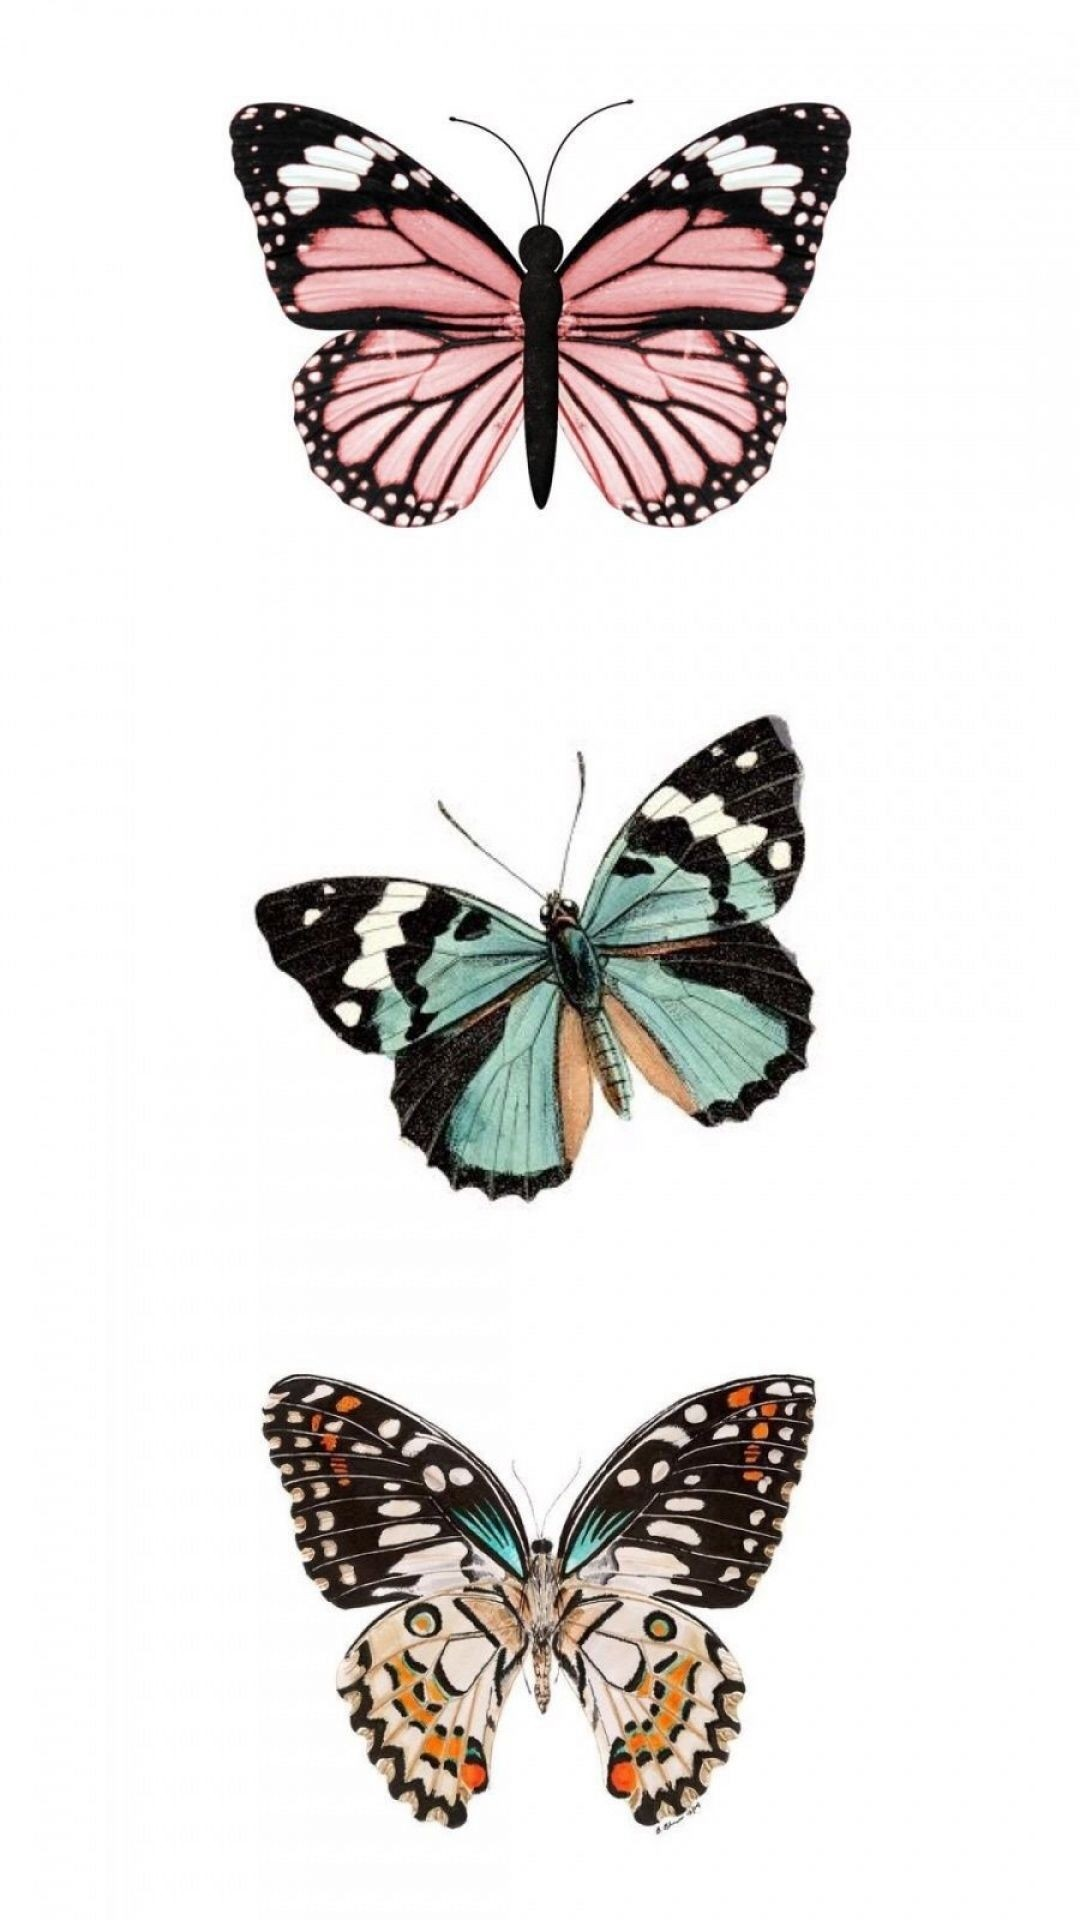 Aesthetic Butterfly lock screen wallpaper